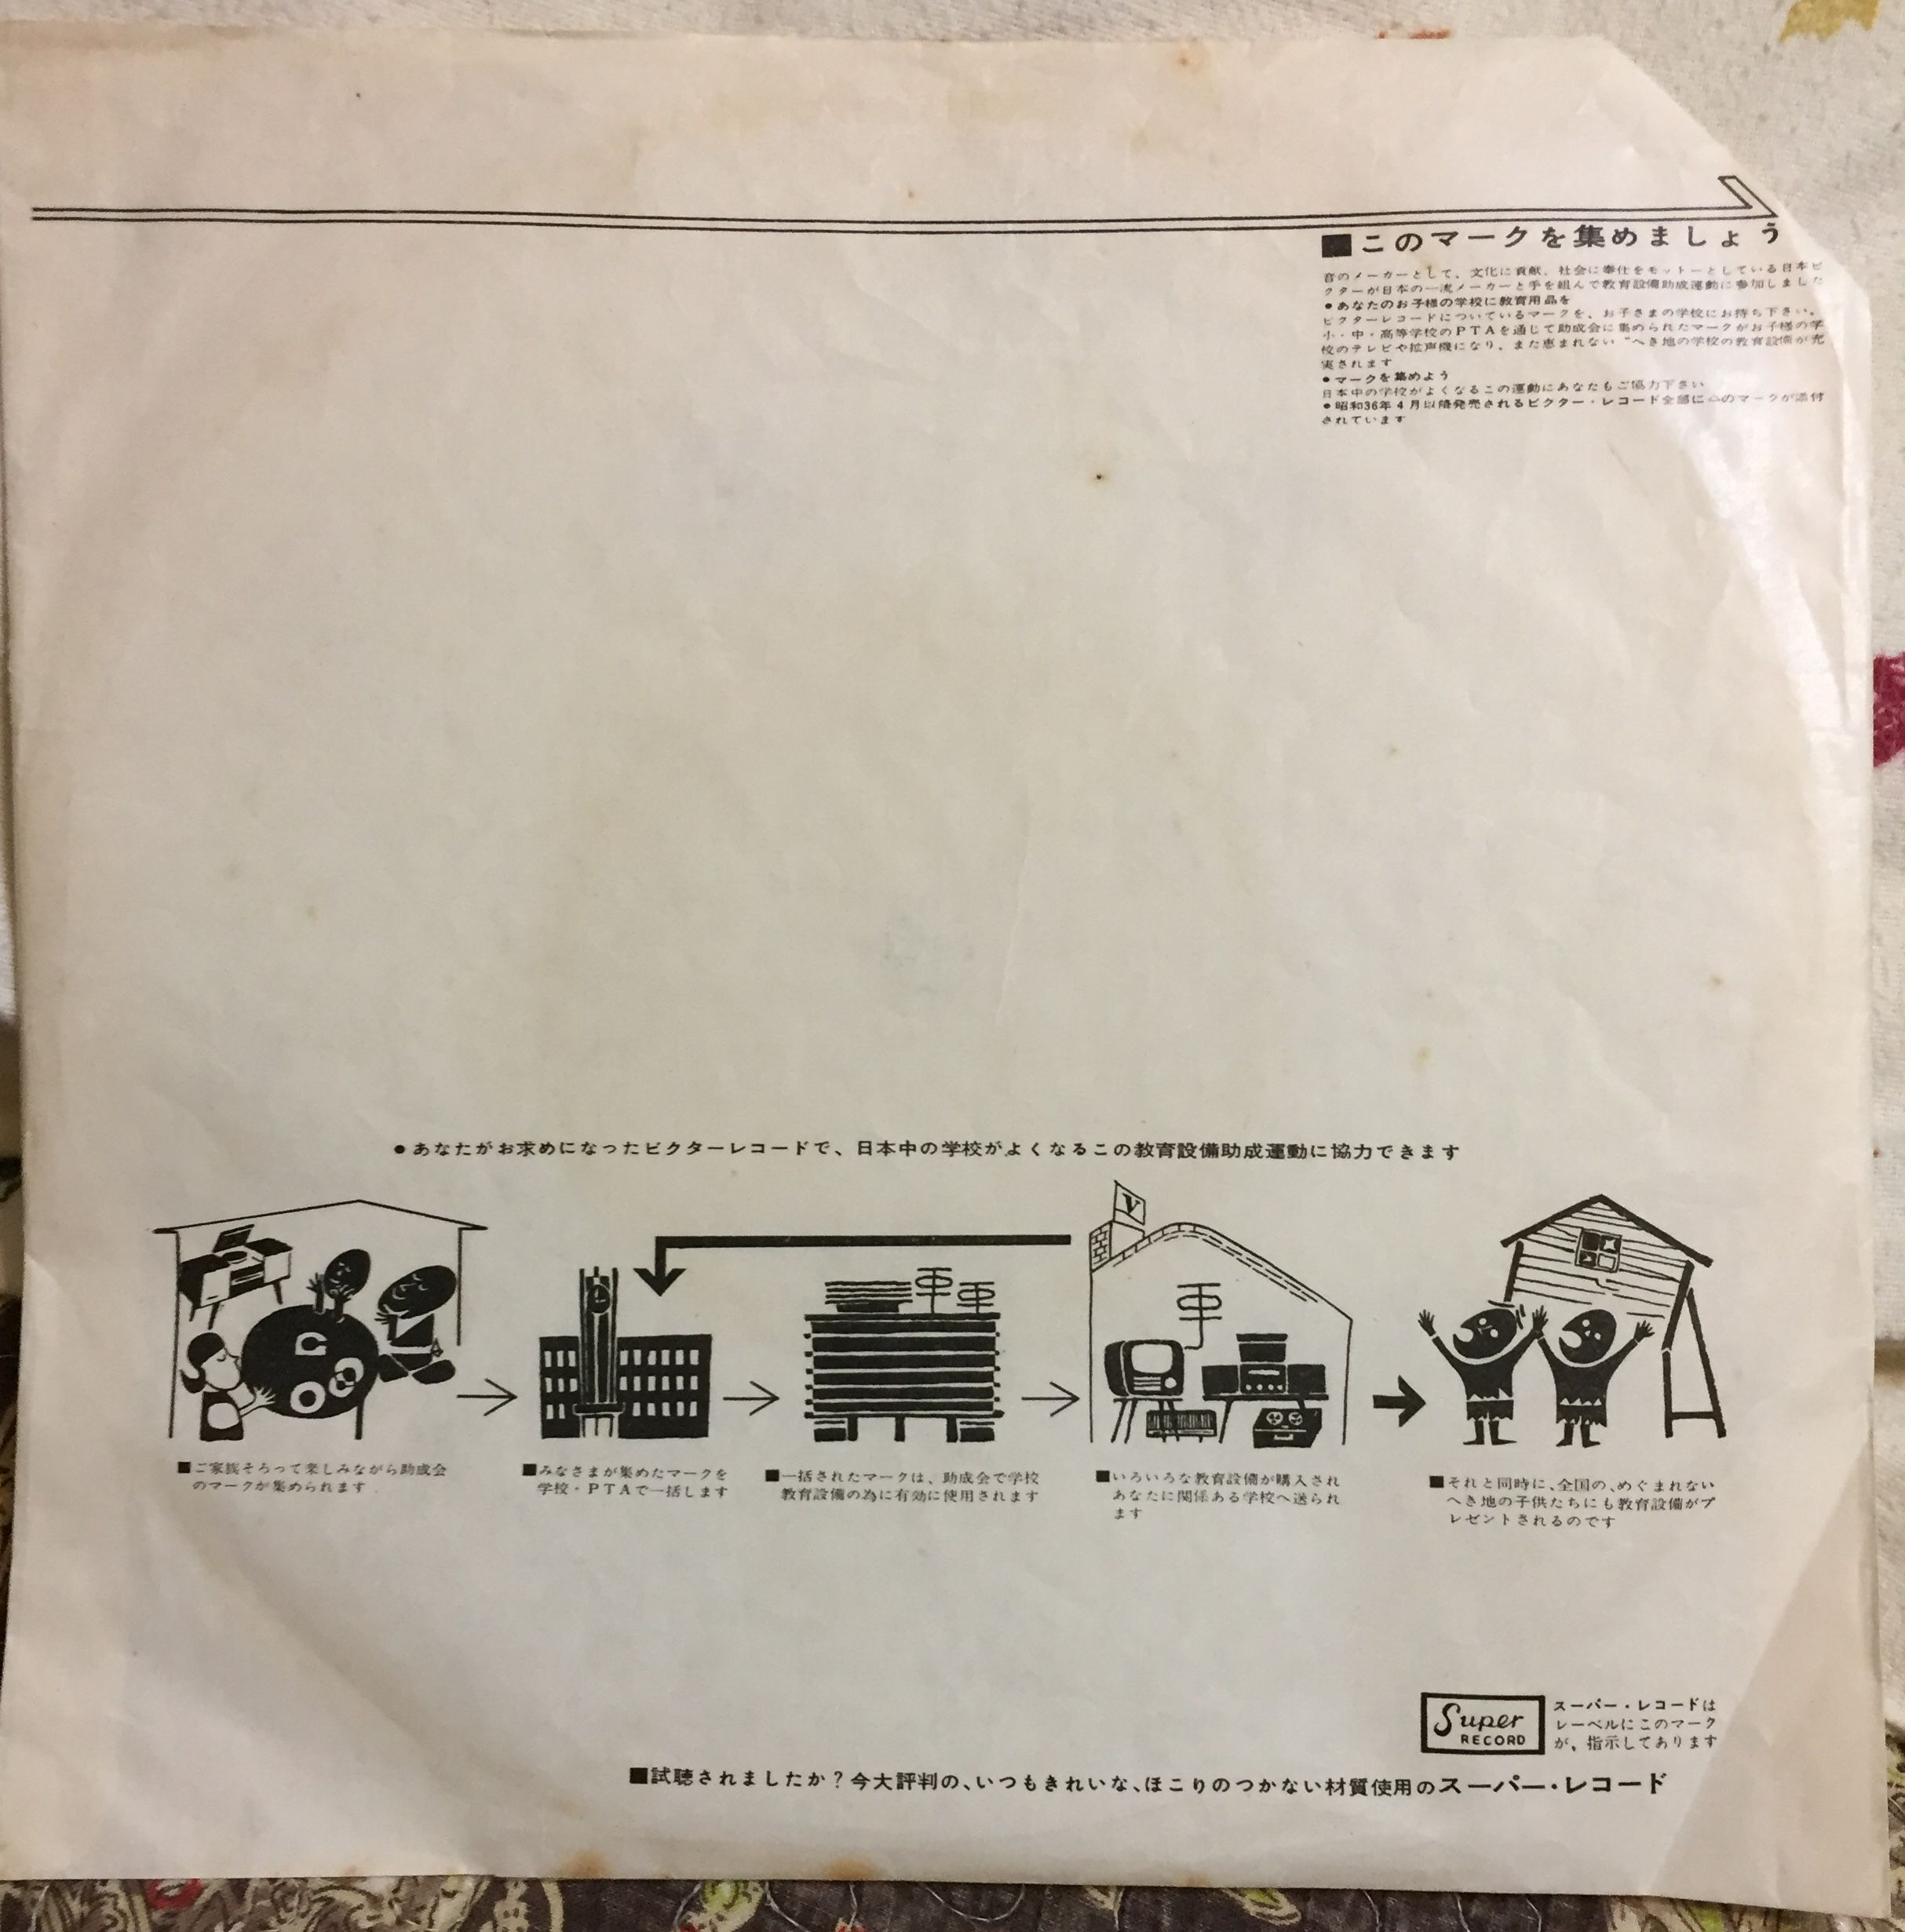 Japanese Star Records 10 Inch Record Inner Sleeve Vinyl Records Record Company Album Covers